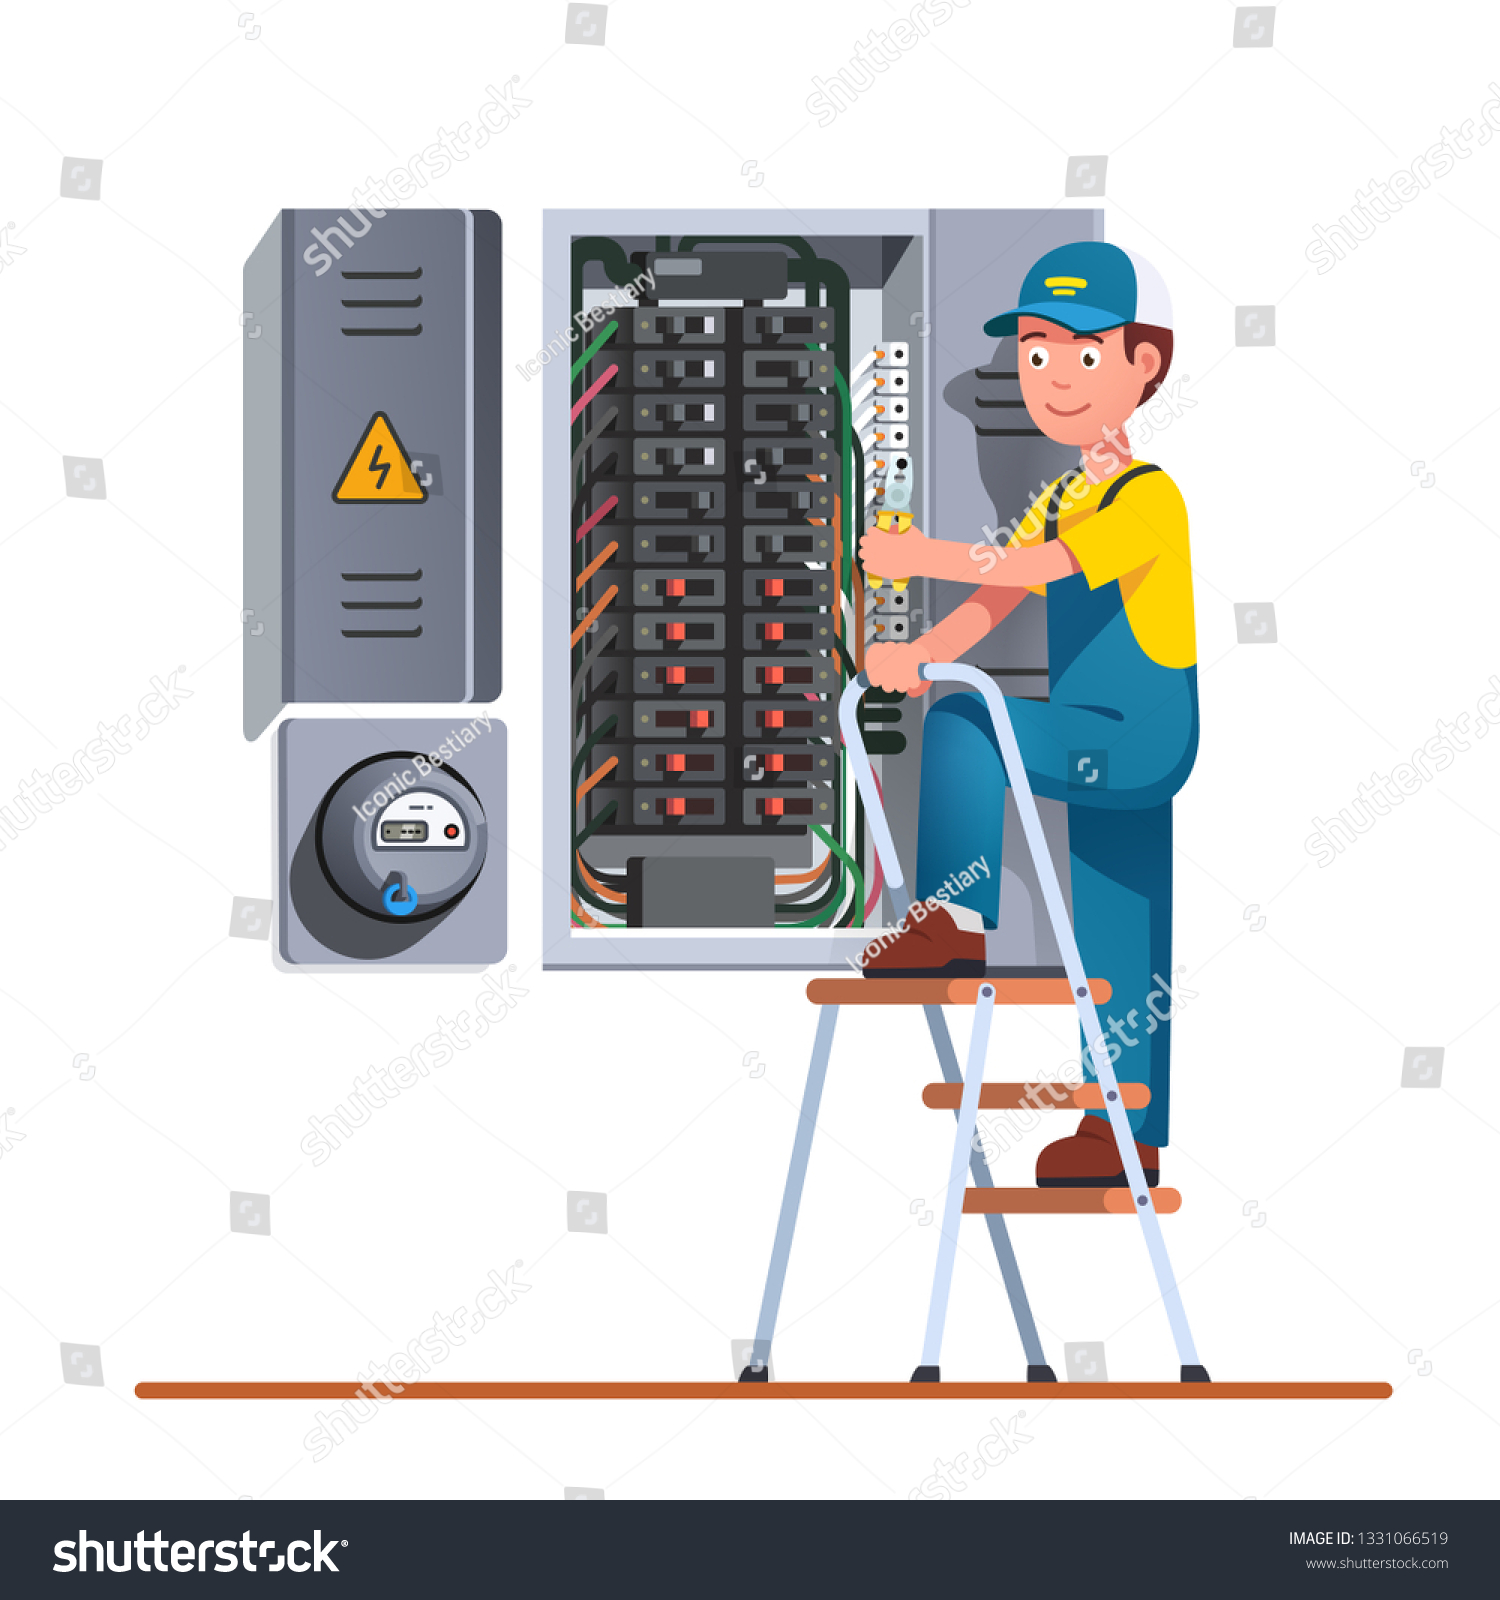 hight resolution of electrician engineer man working with breaker fuse box on ladder electrical service panel cabinet